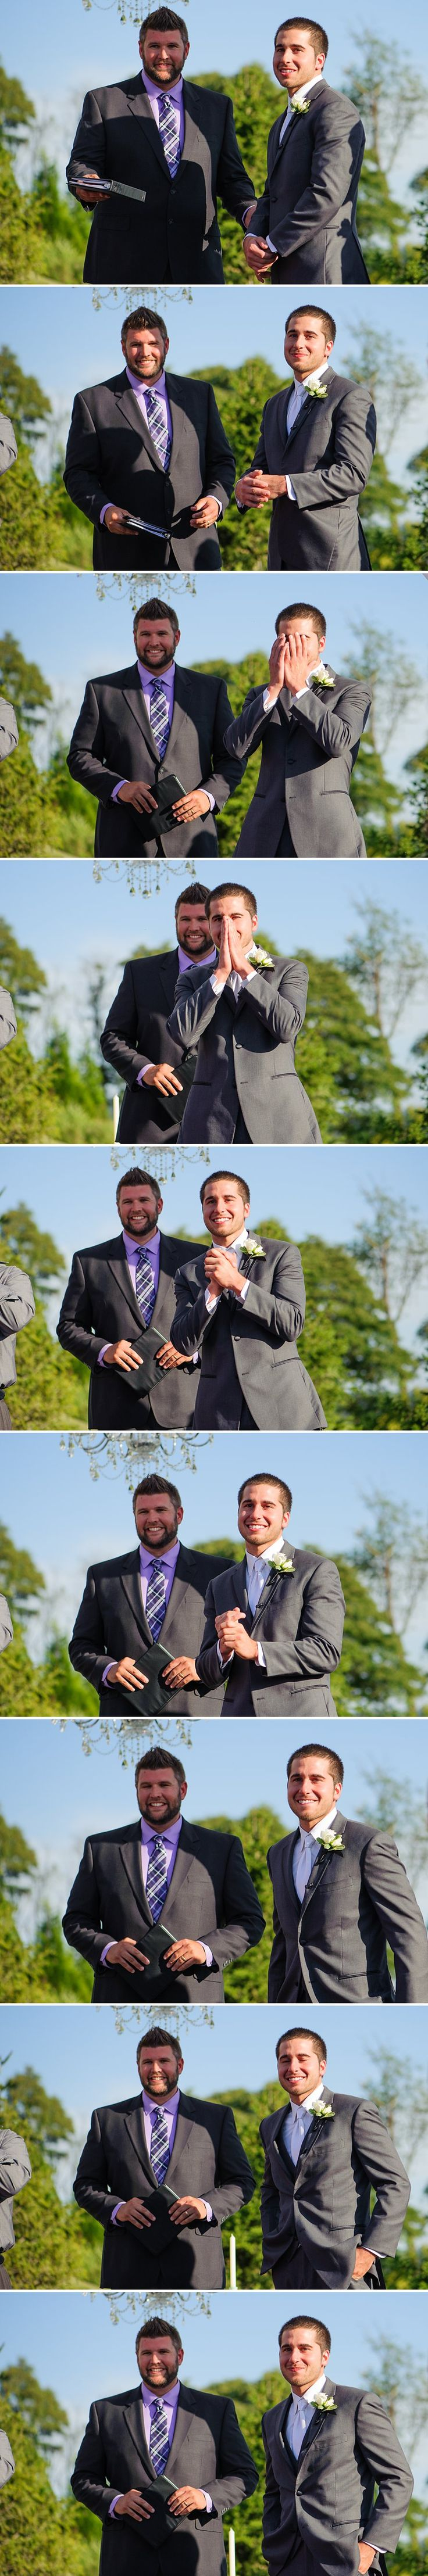 Kimberly Brooke Photography | BEST GROOM REACTION EVER to bride coming down aisle!!! Love this @Kimberly Brooke Green and that Pete is in it!